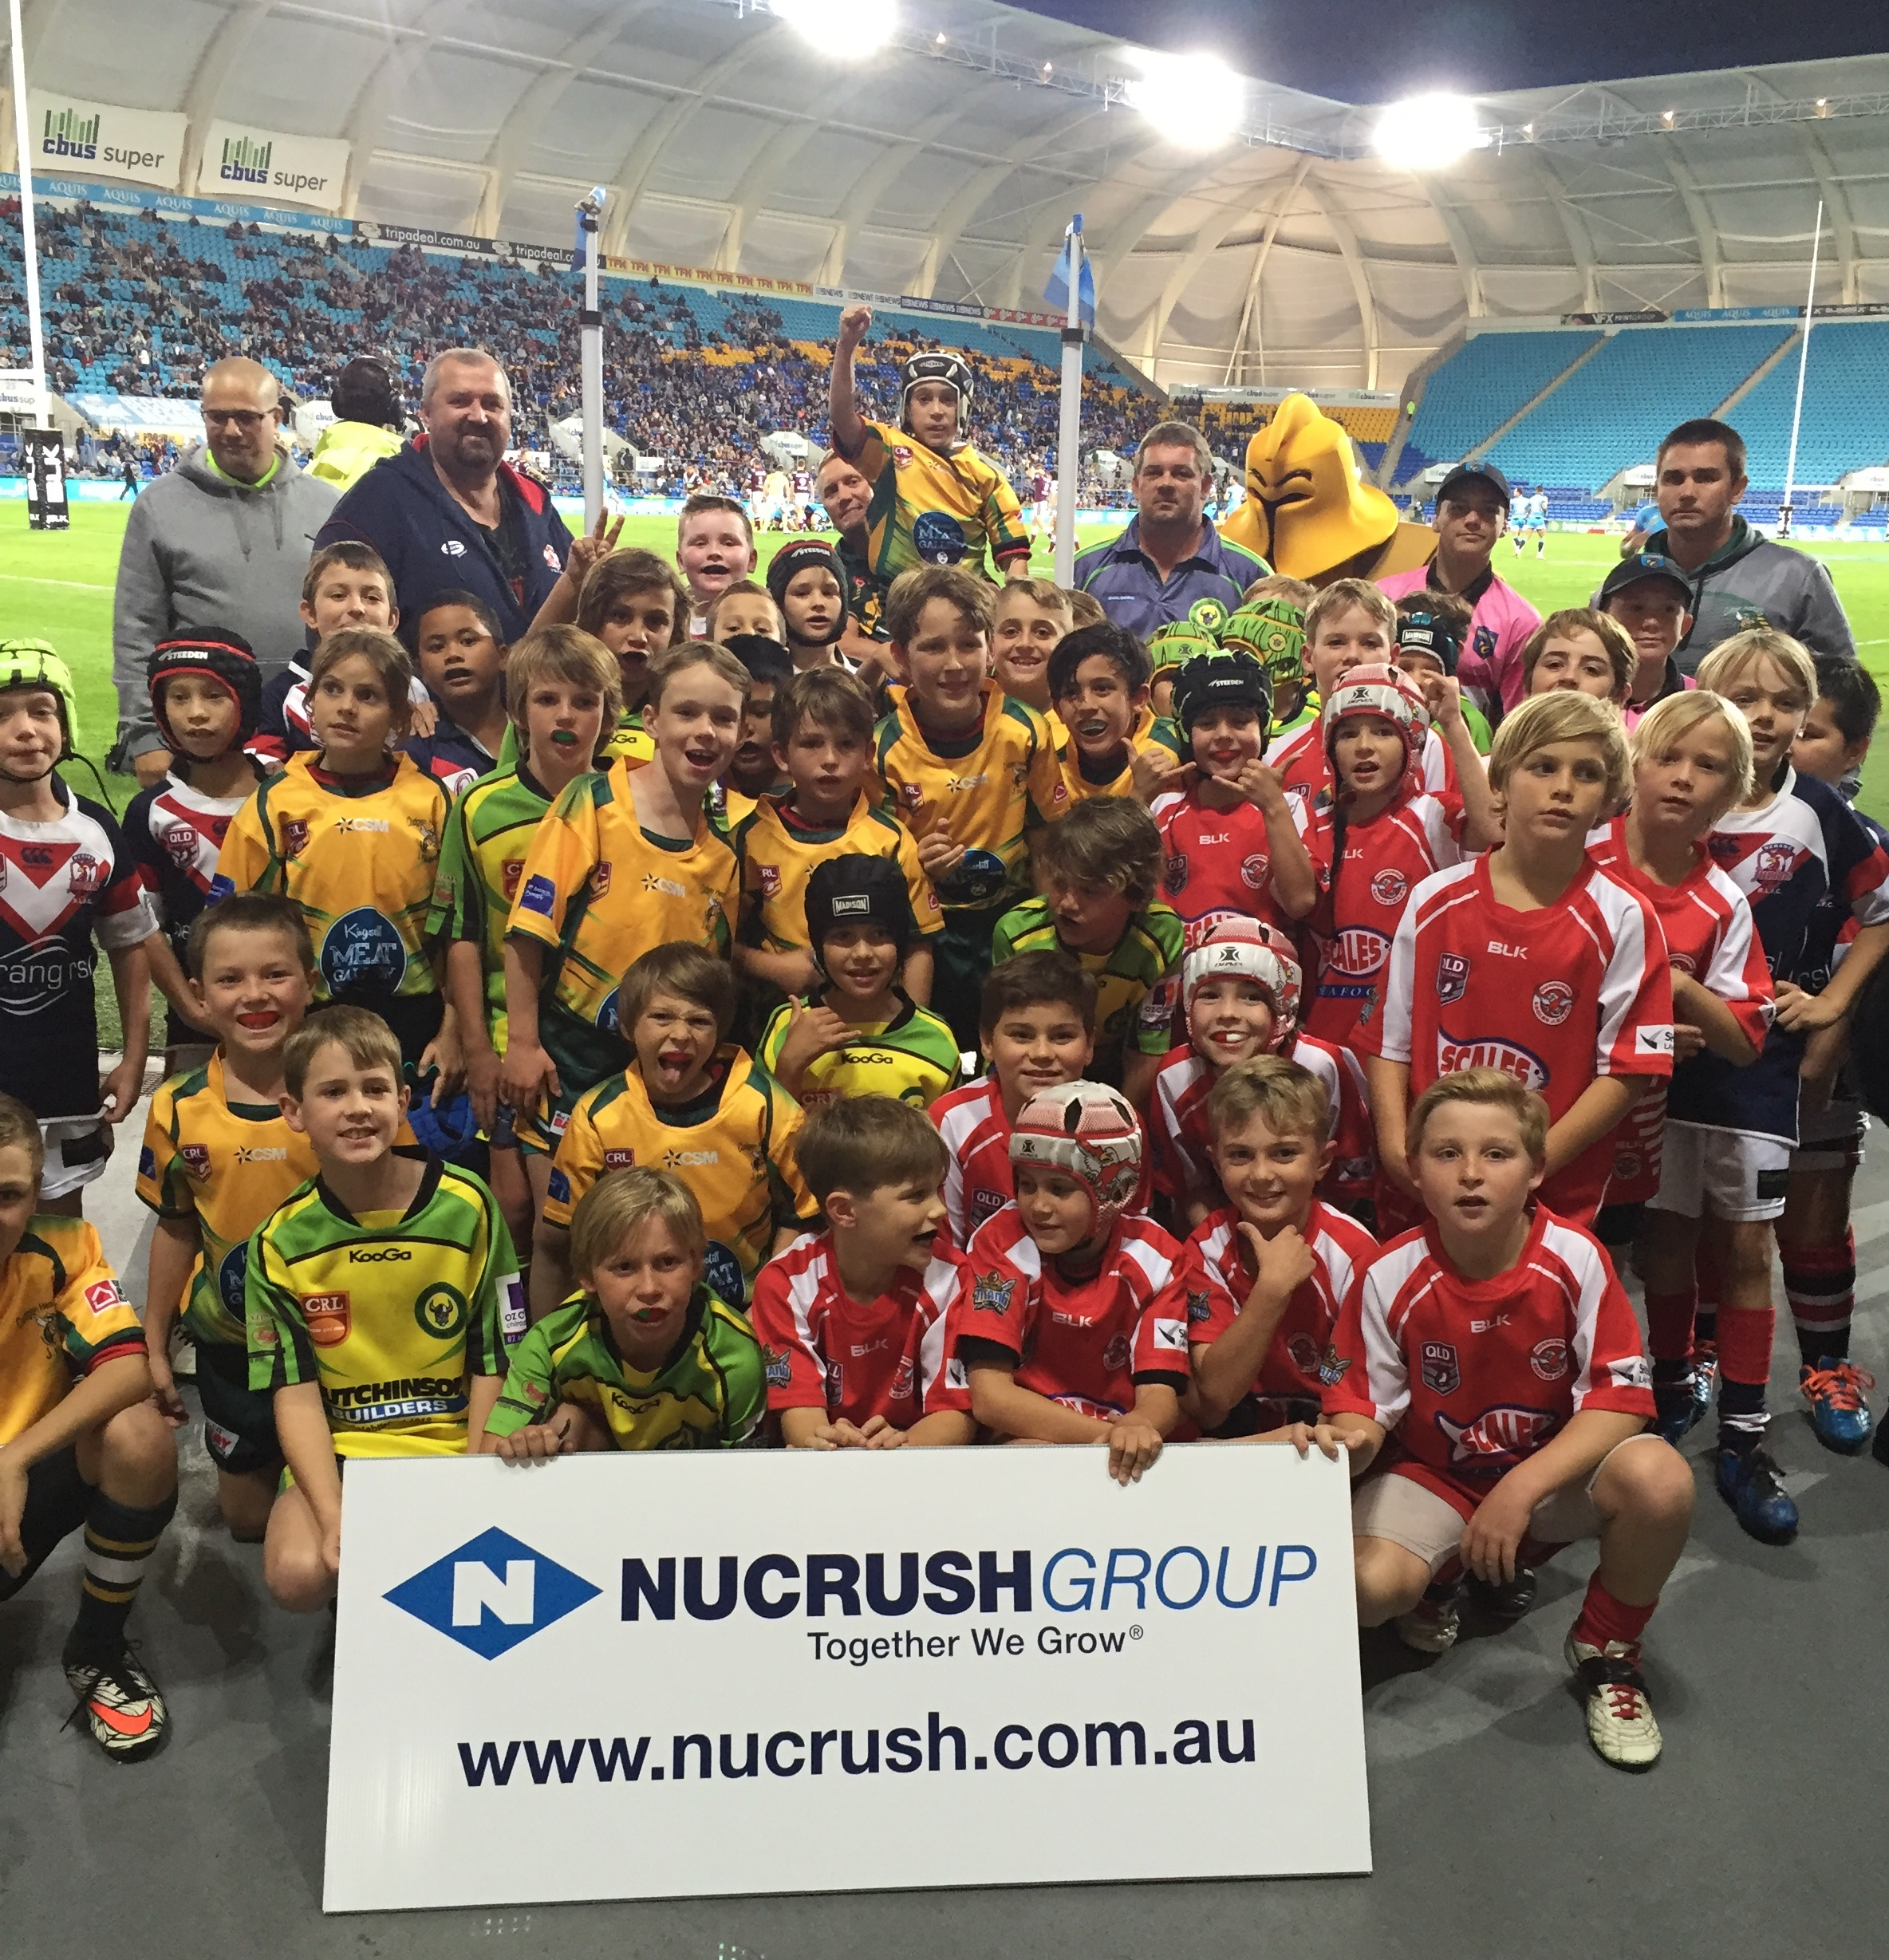 Nucrush half time mini league photo